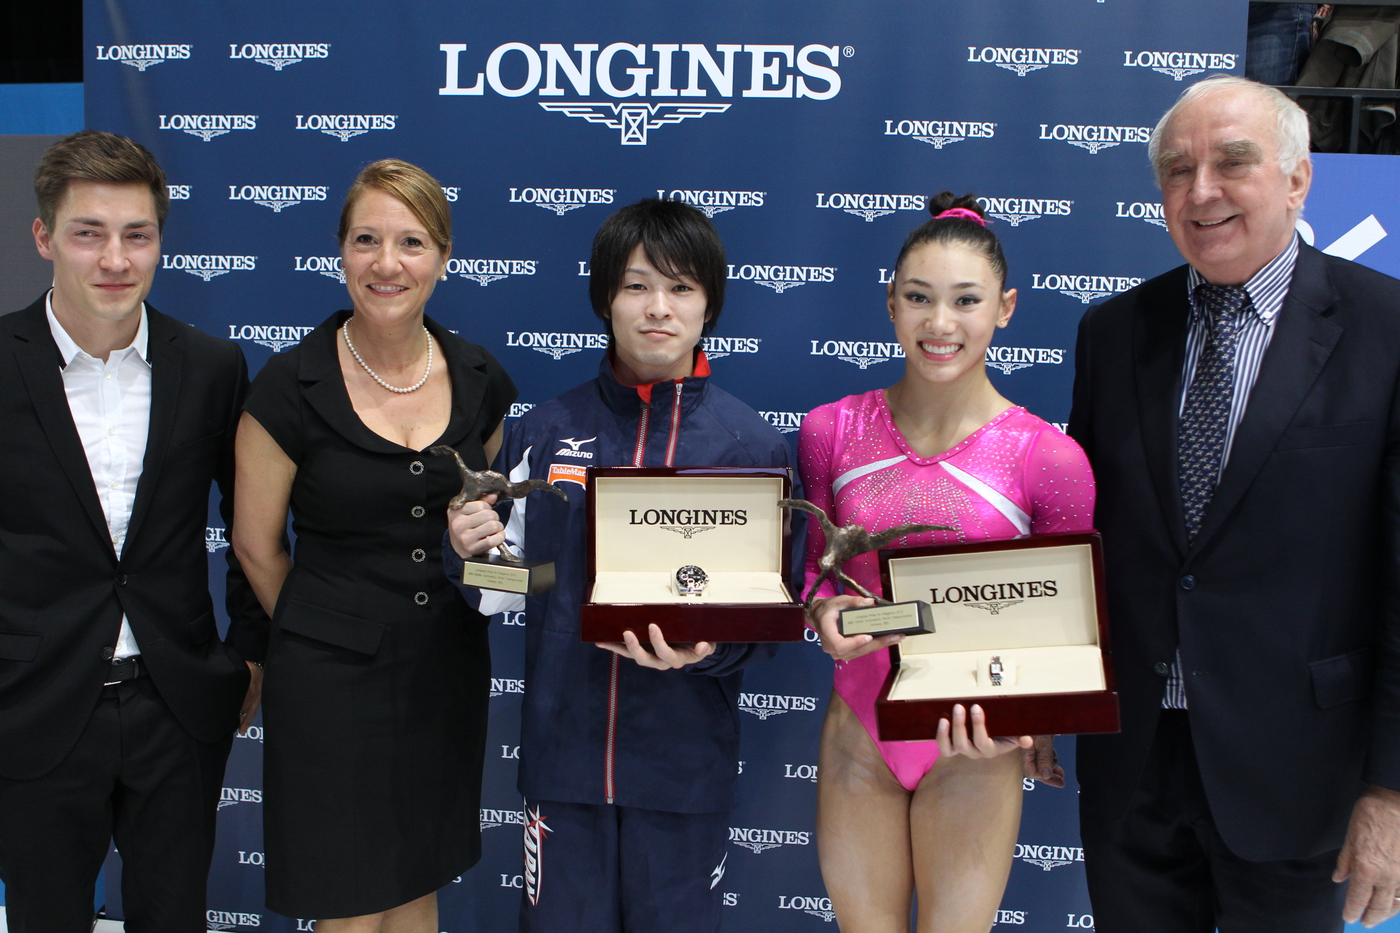 Longines Gymnastics Event: Longines Prize for Elegance awarded to Kyla Ross and Kohei Uchimura at the 44th Artistic Gymnastics World Championships in Antwerp 1